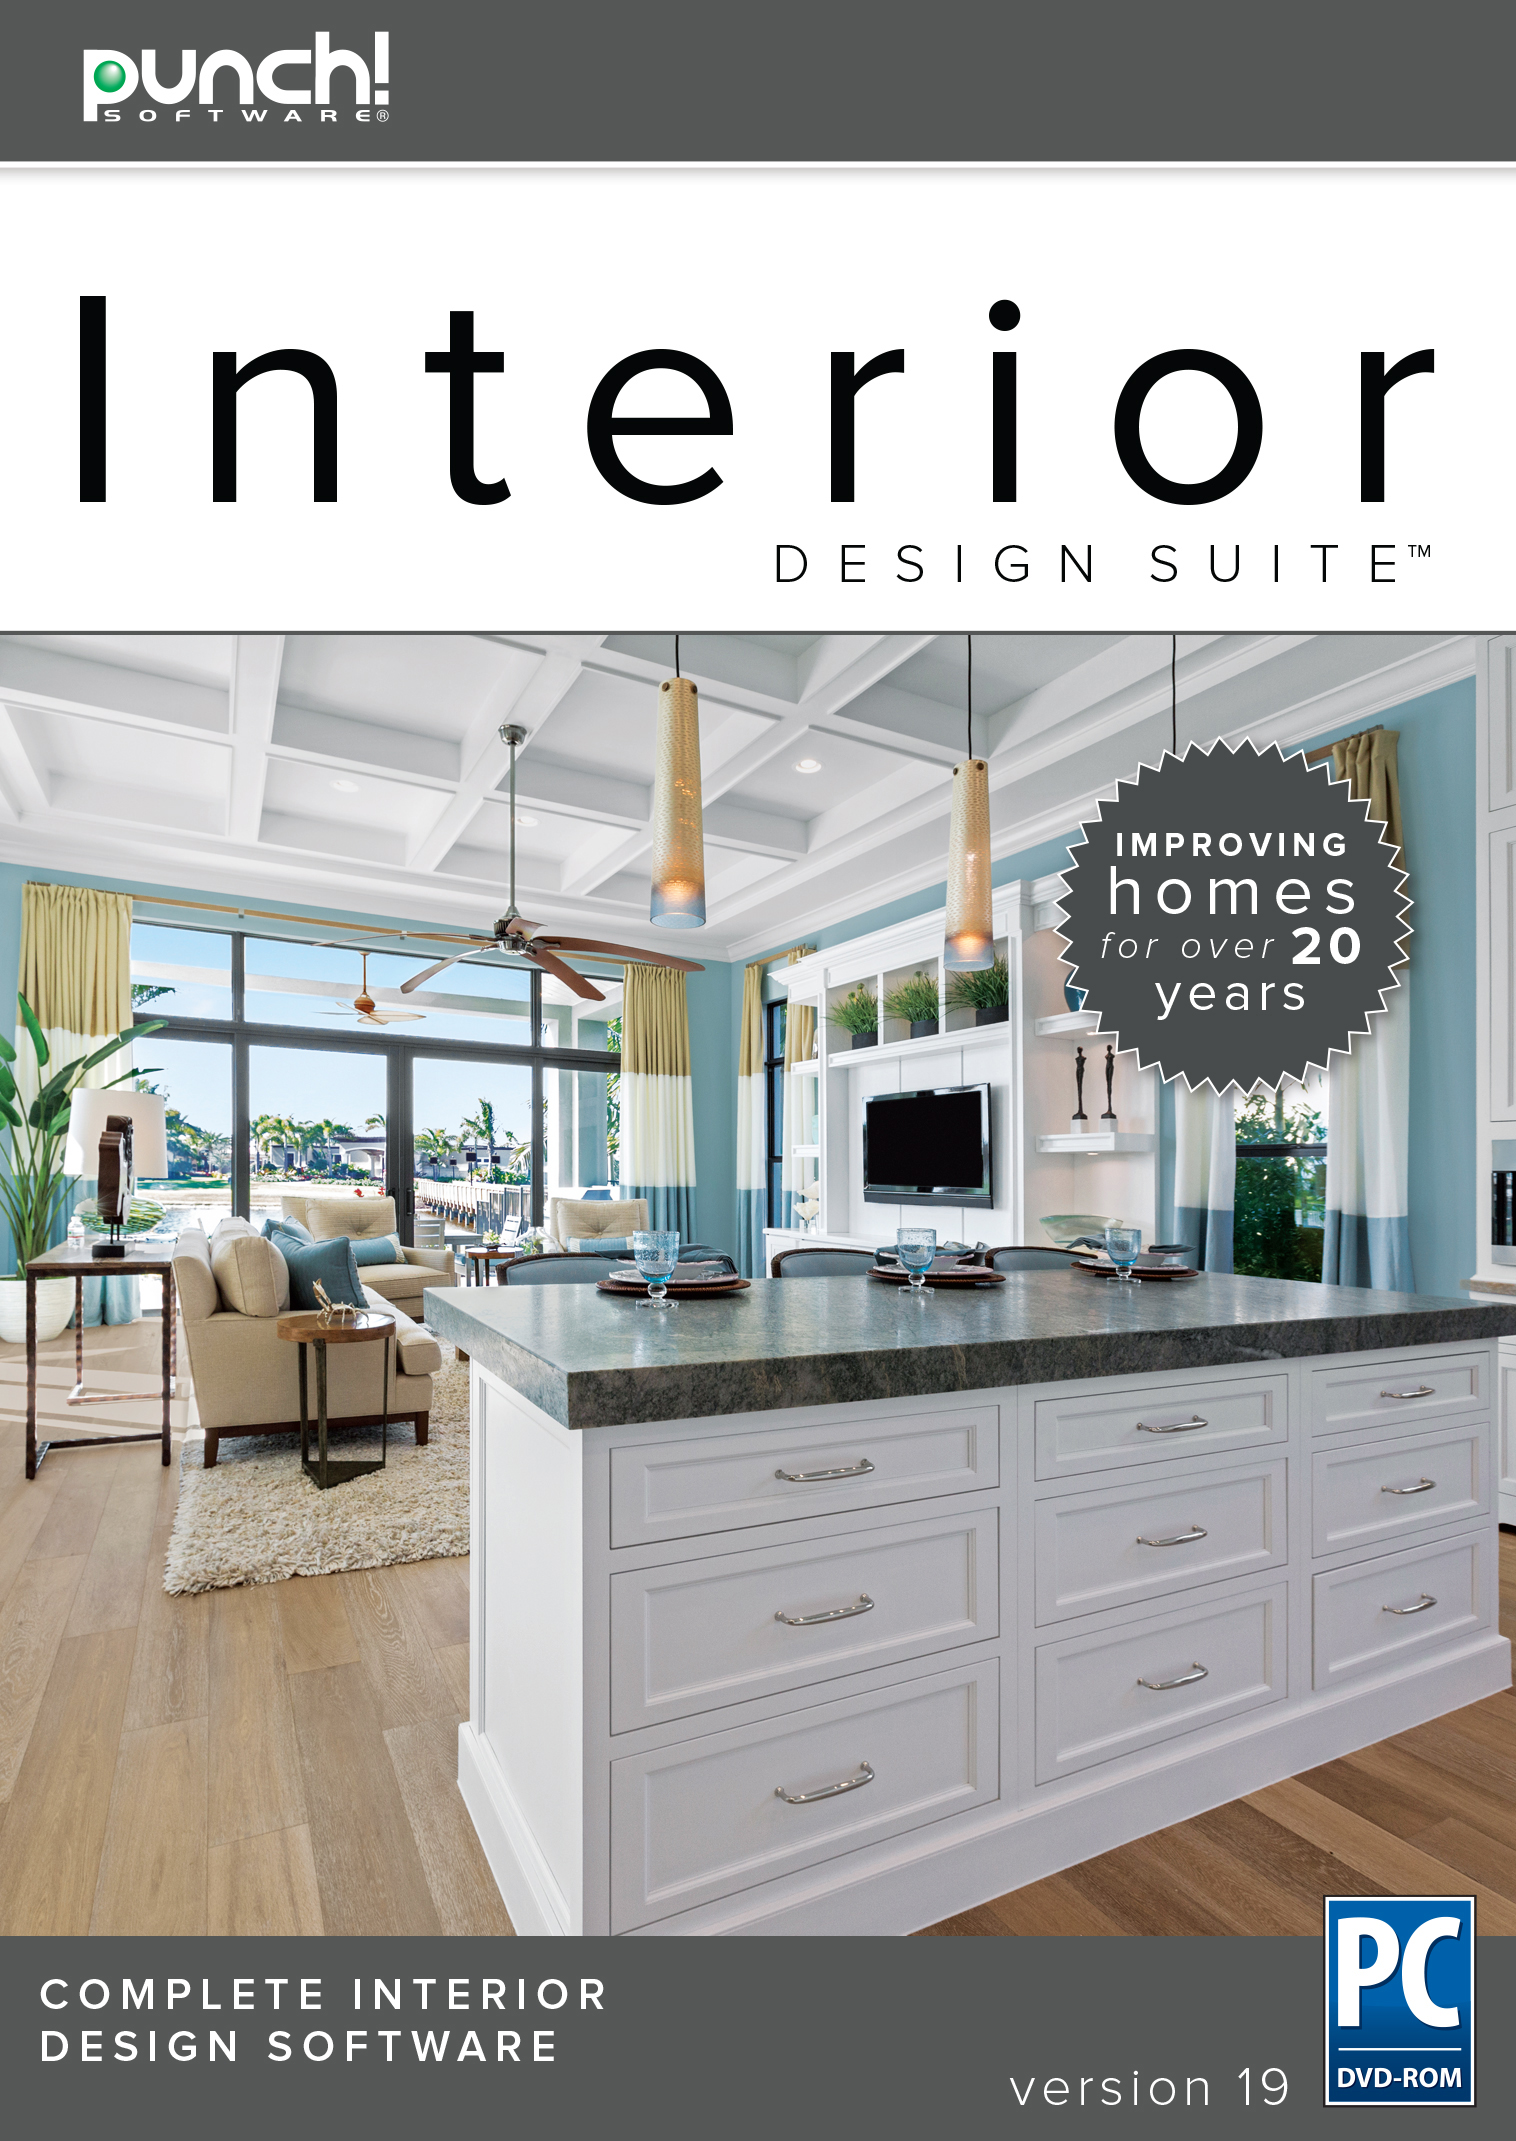 Interior design suite v19 the best selling interior home design software for windows pc download software